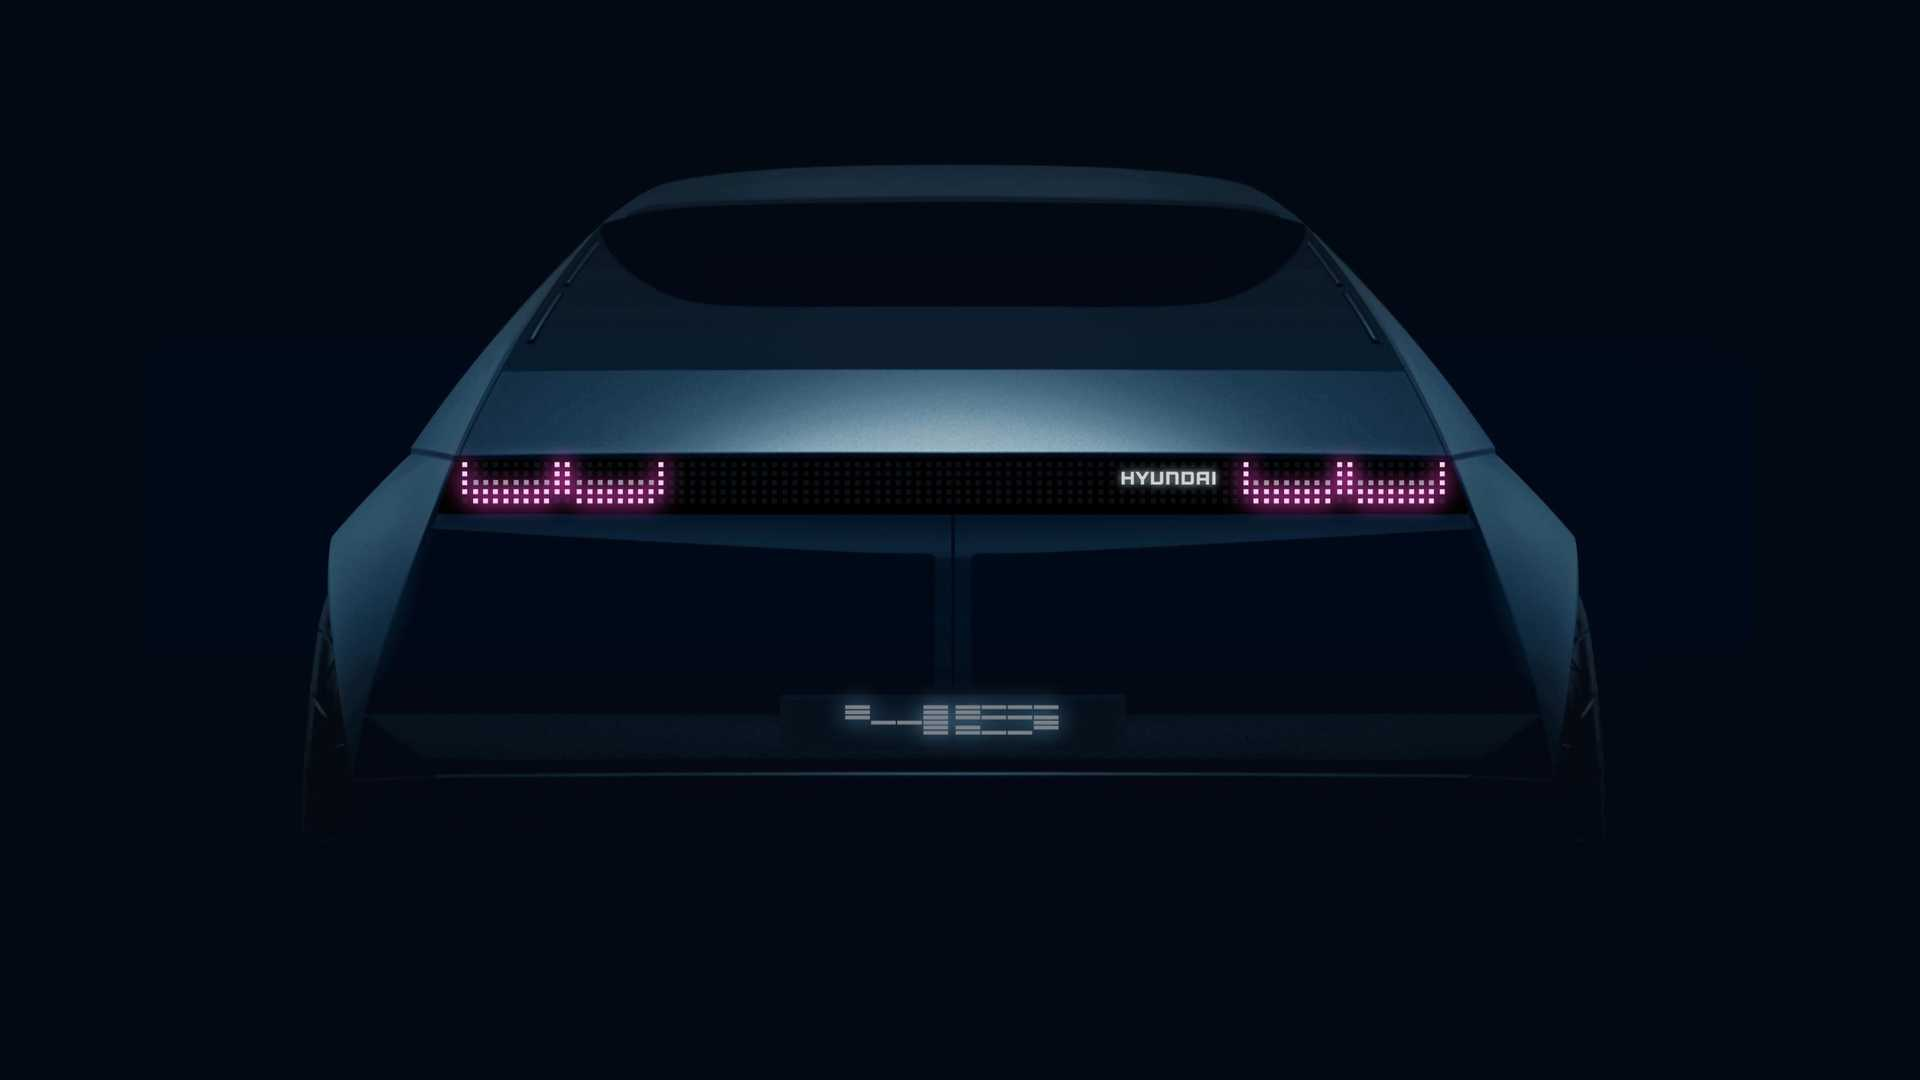 Hyundai Teases 1970's-Inspired『45』 Electric Concept Ahead Of Reveal